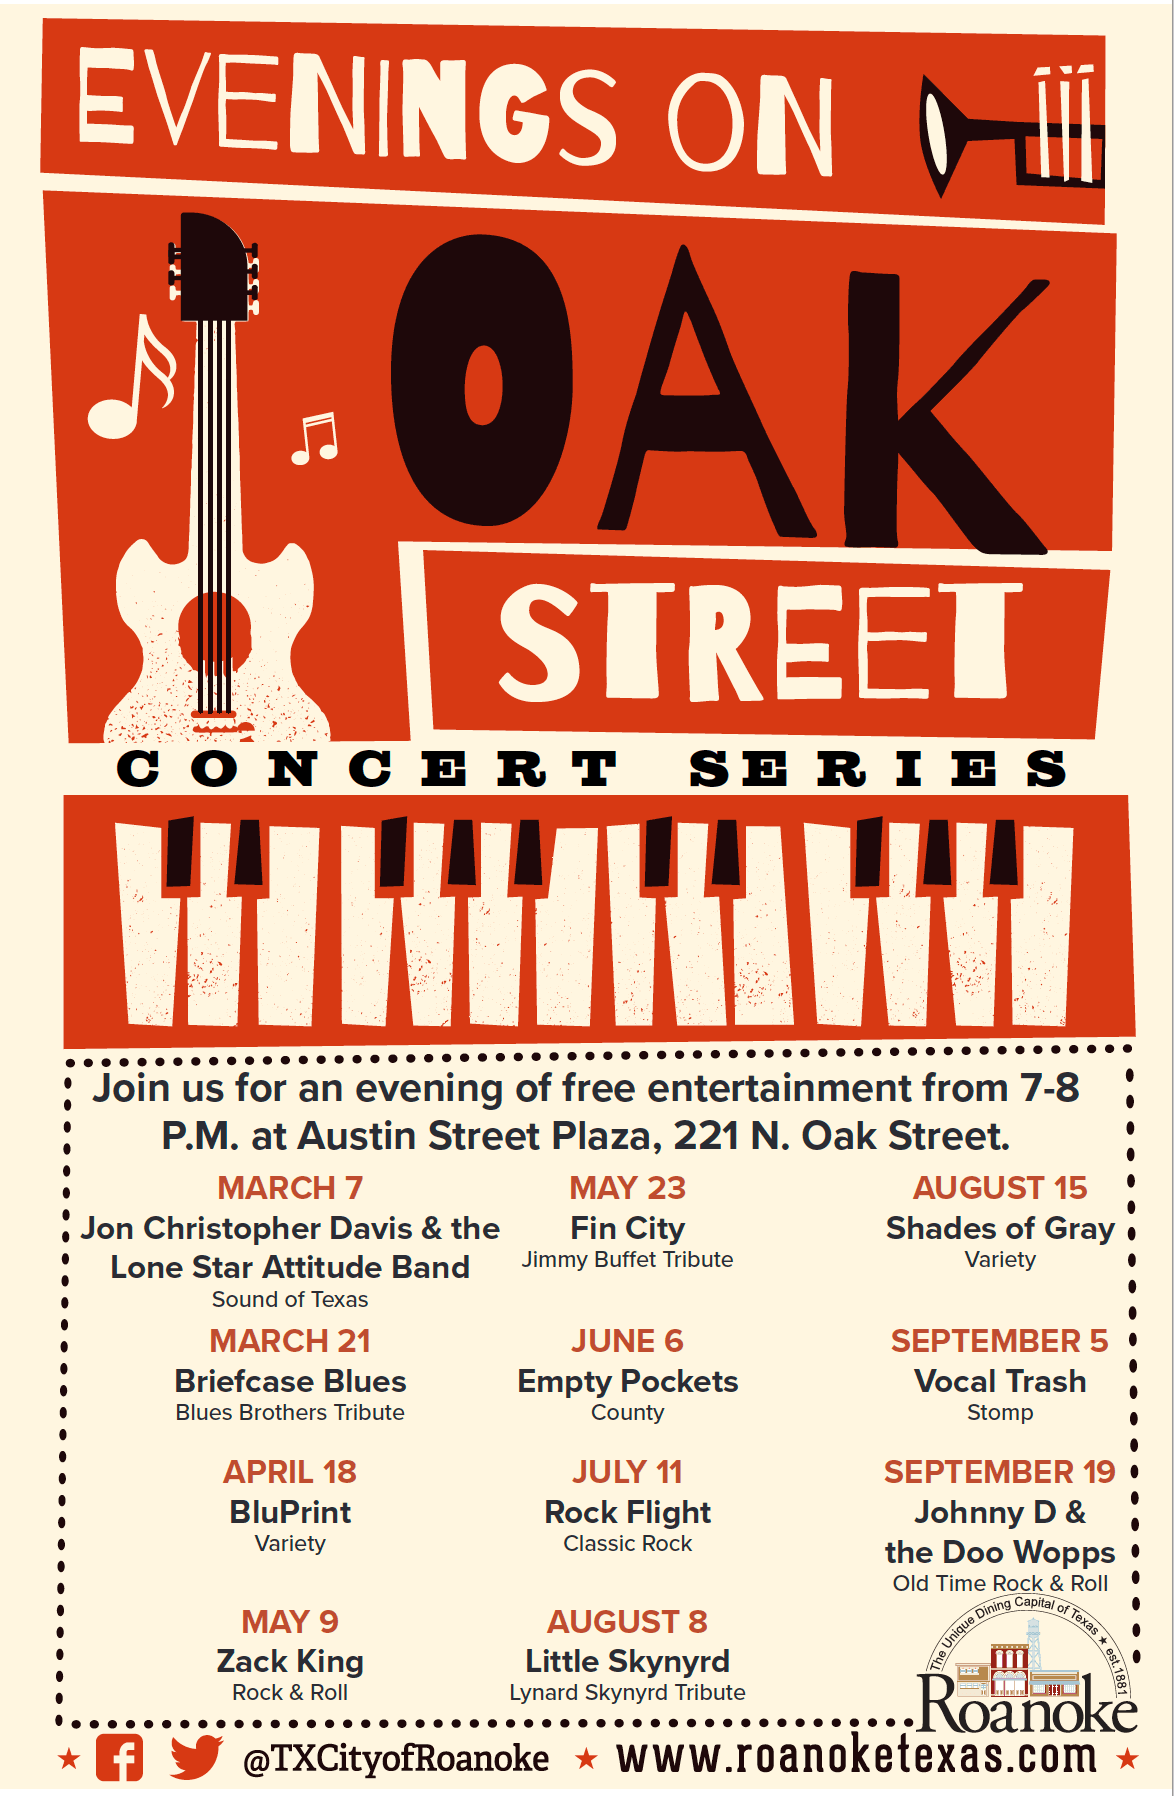 Evenings on Oak Street Concert Series